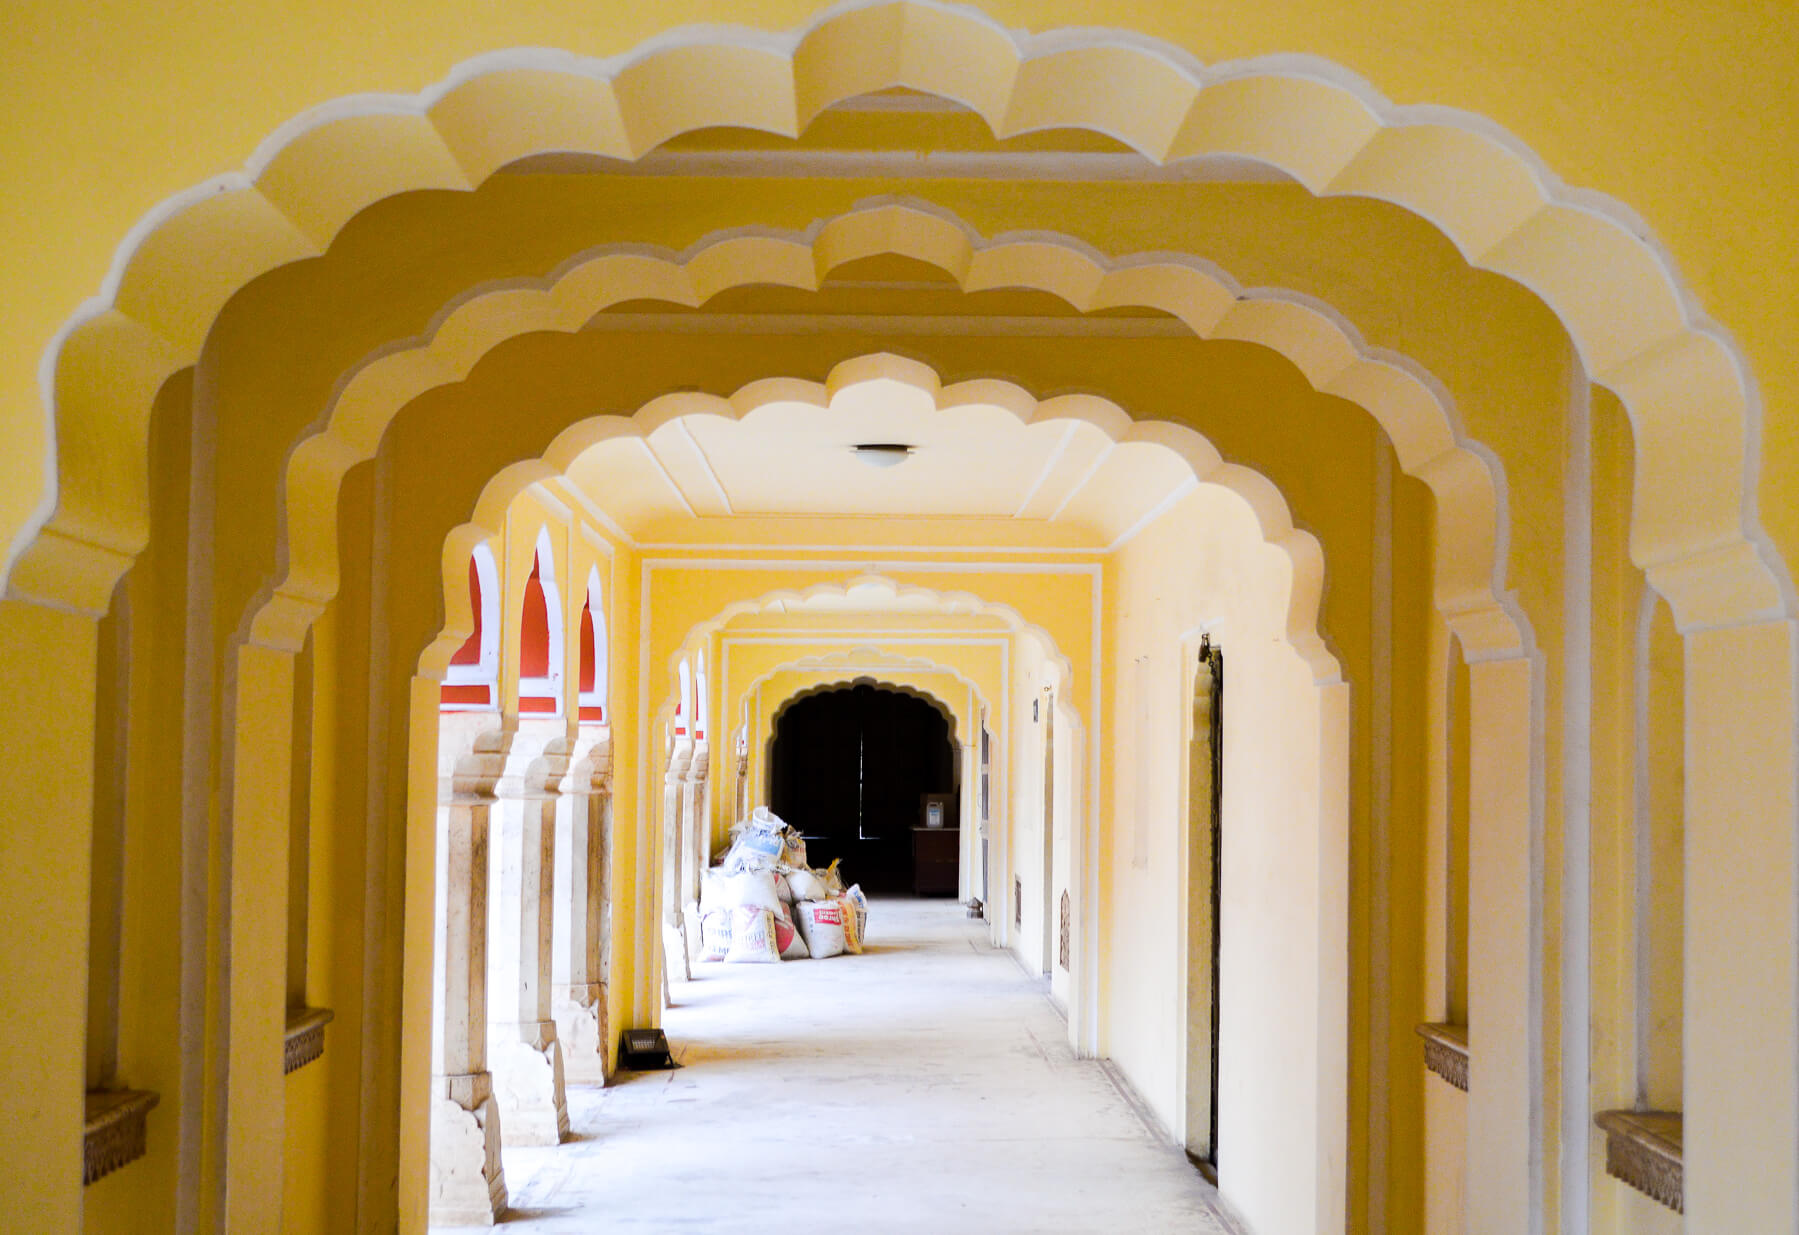 Looking through bright yellow archways of a corridor